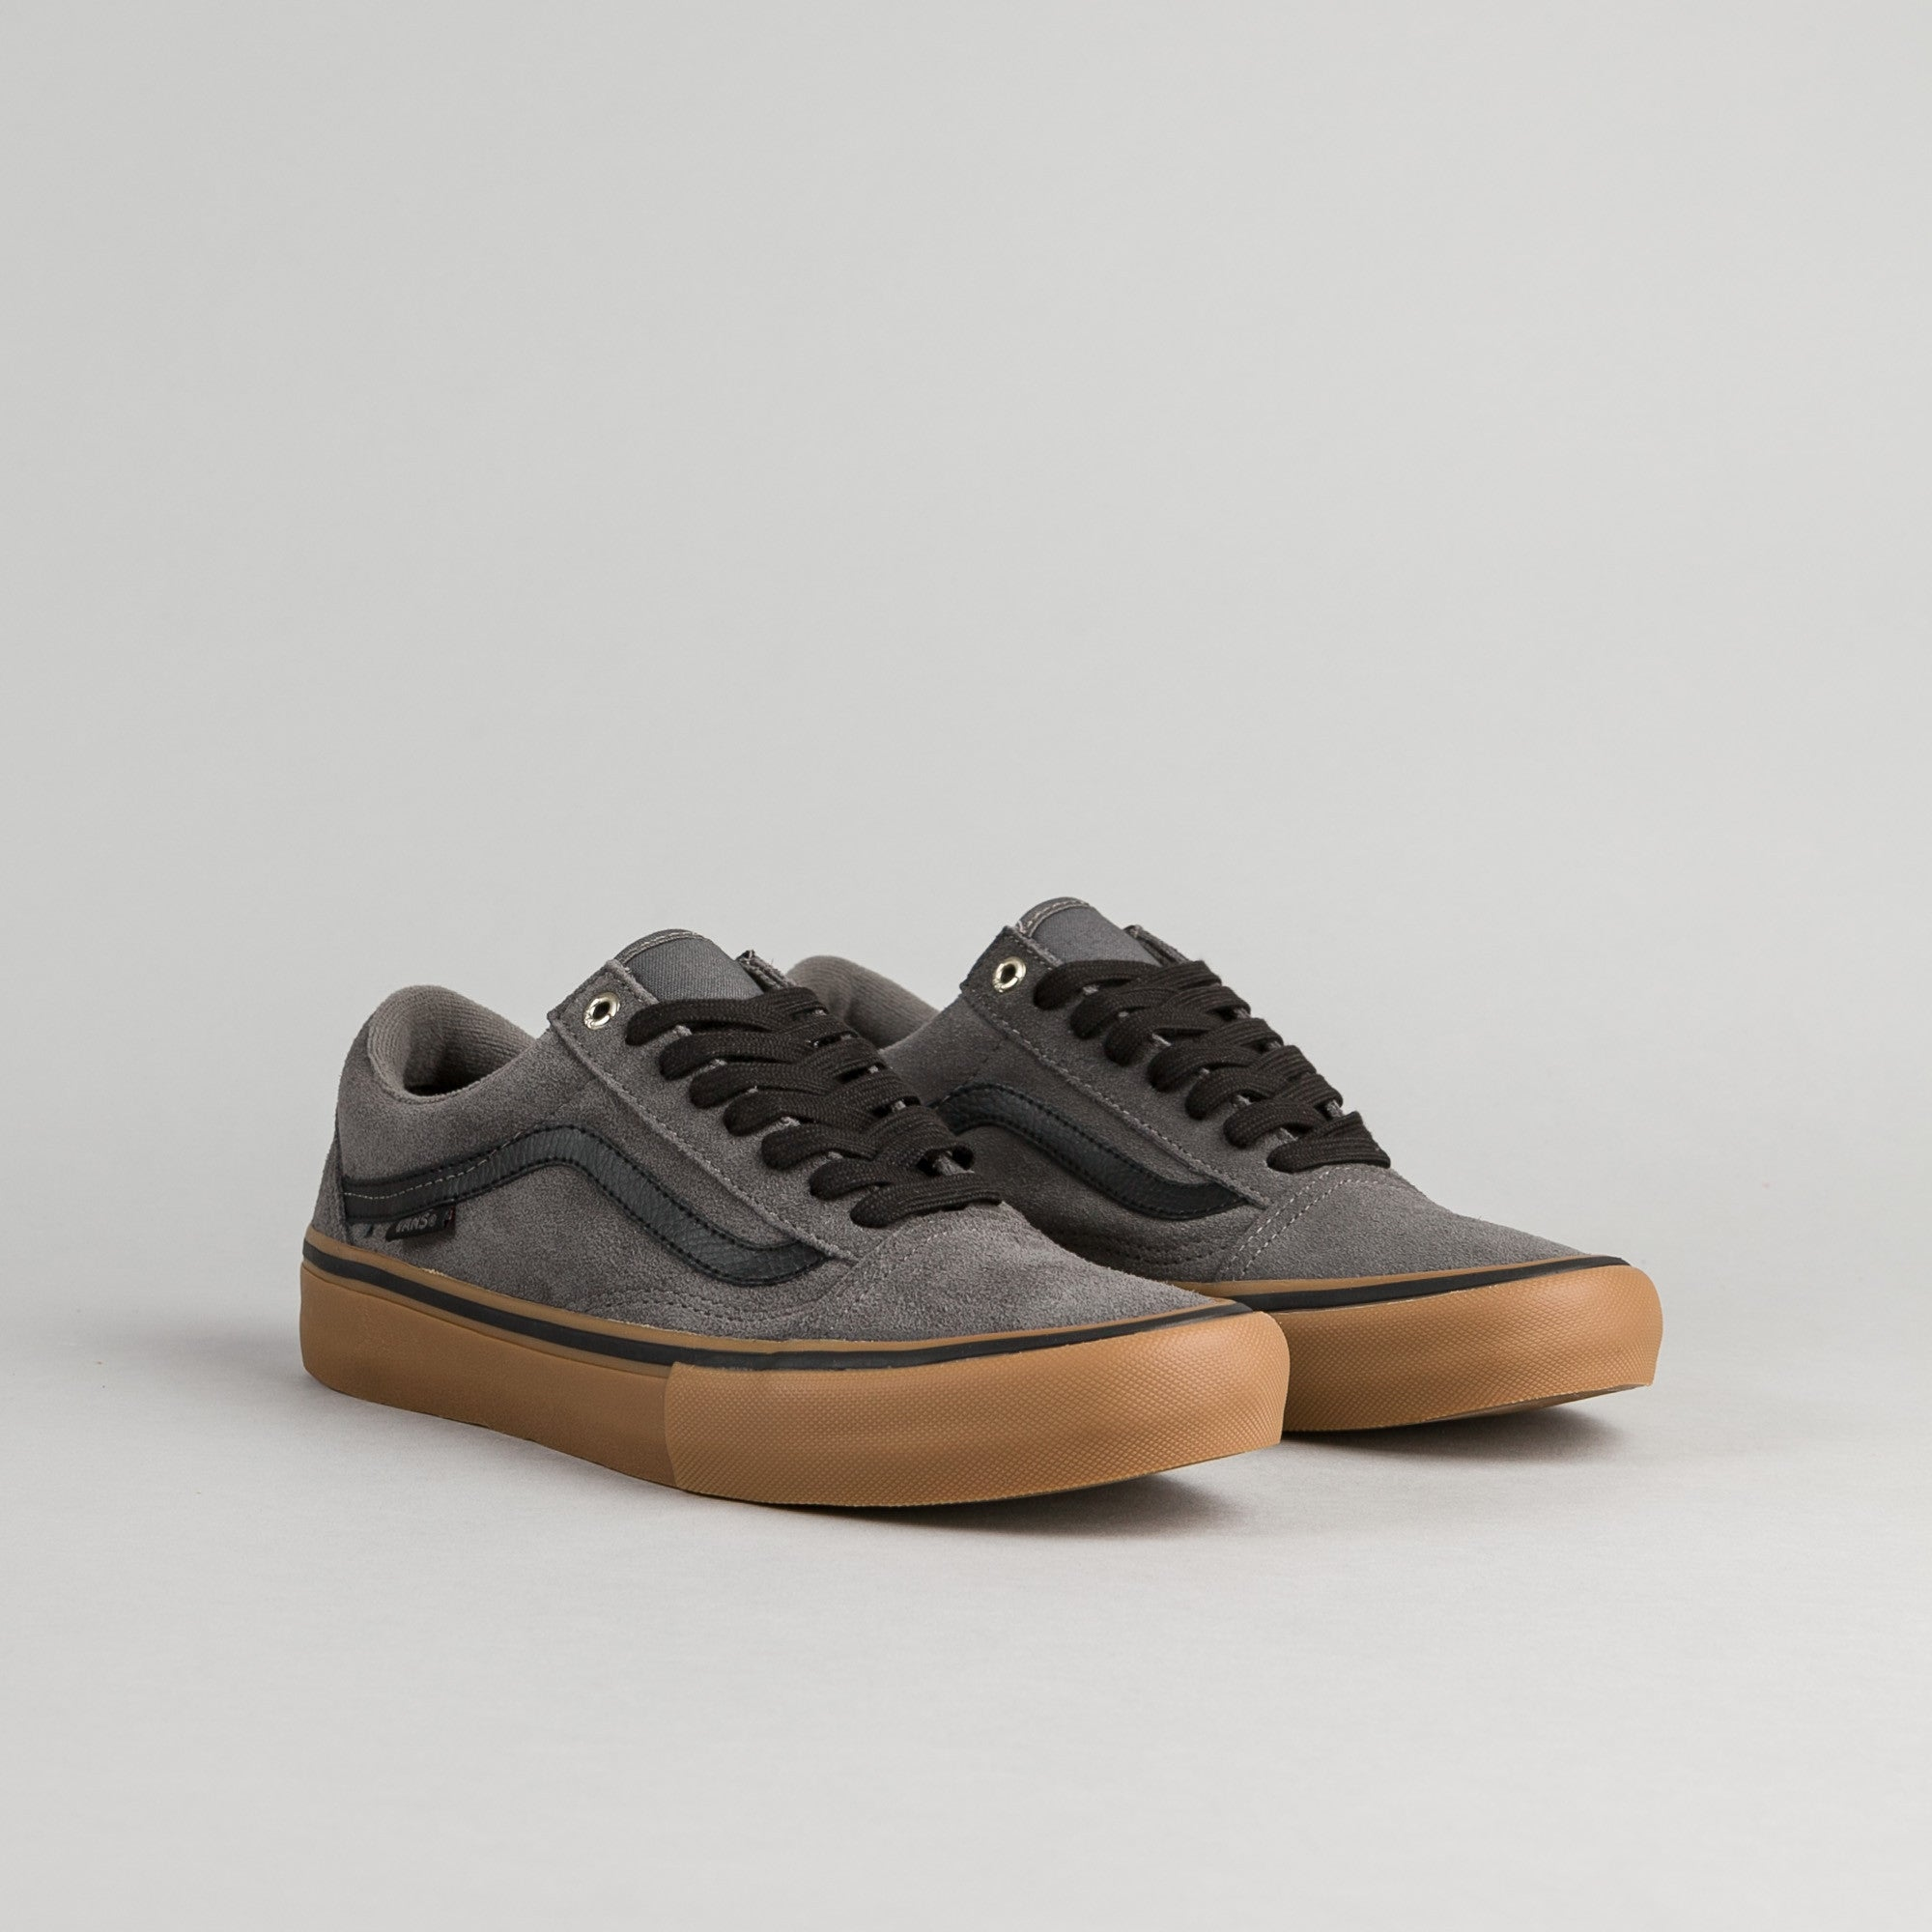 Vans Old Skool Pro Shoes - Grey / Black / Gum